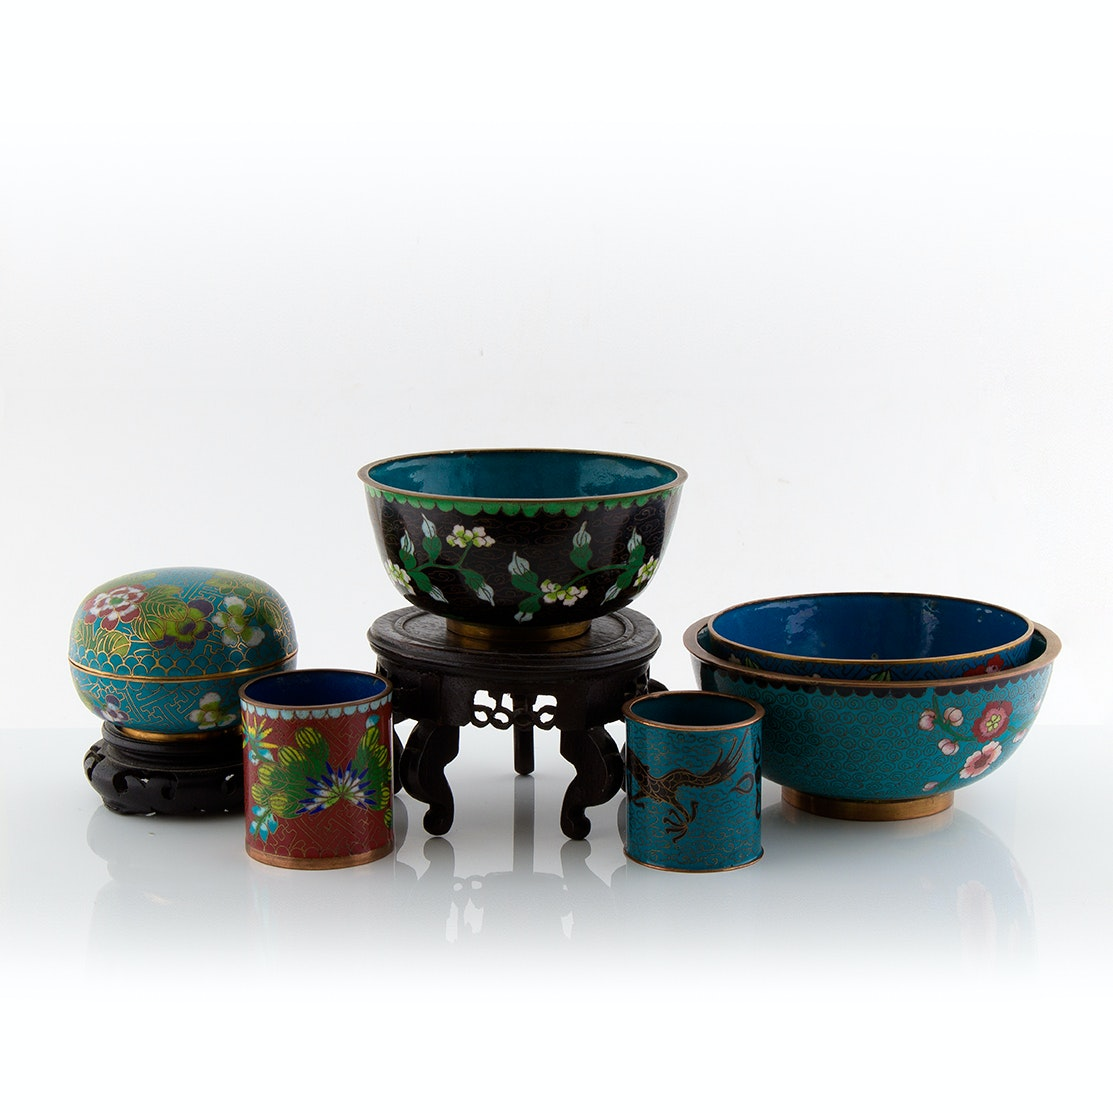 Vintage Chinese Cloisonné Bowls, Lidded Jar and Decor